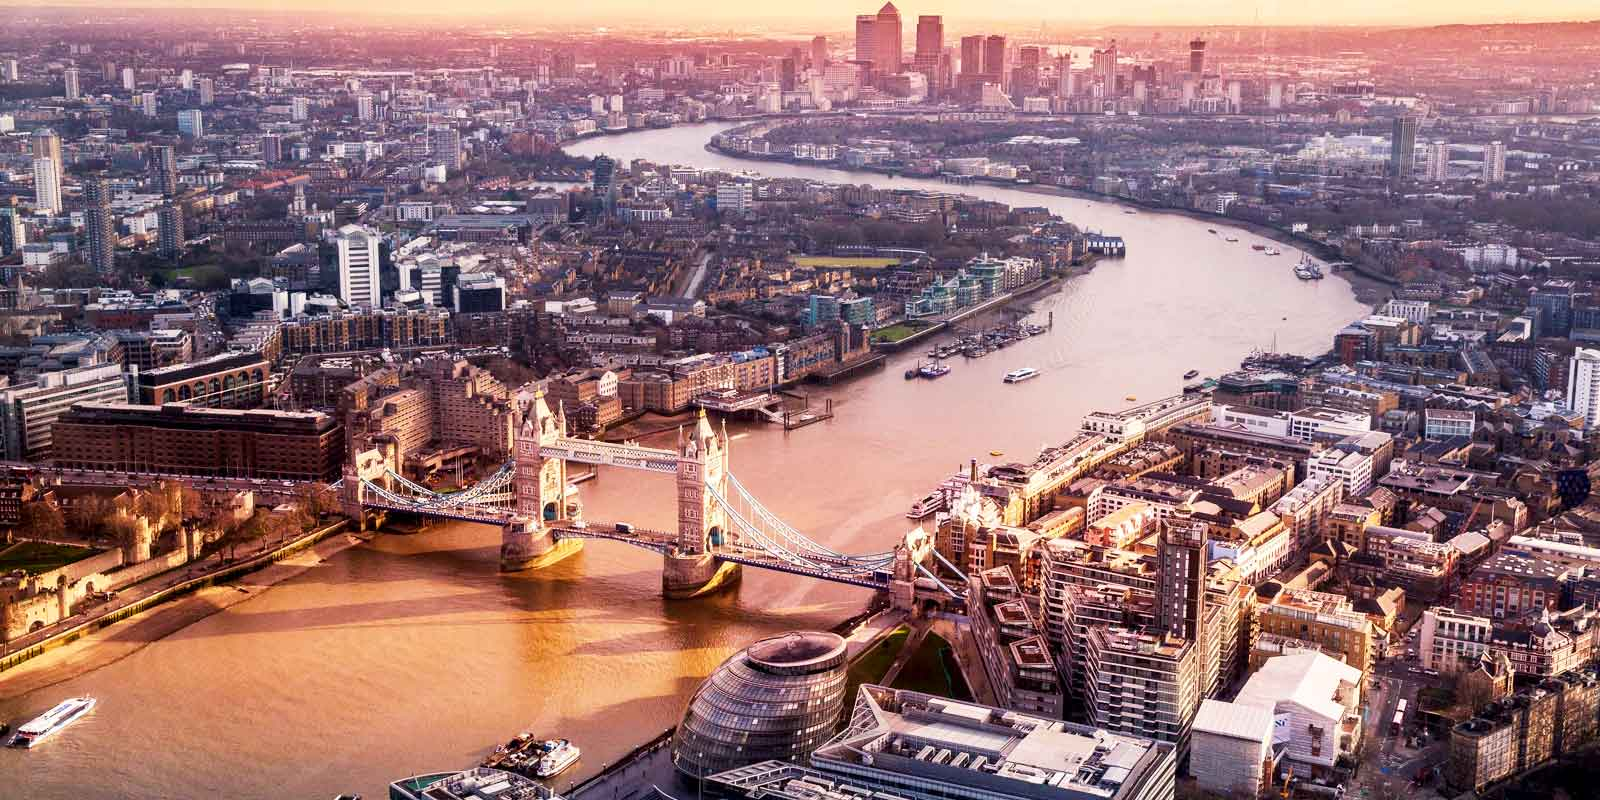 Aerial landscape view of the Tower Bridge in London and surrounding neighborhoods.